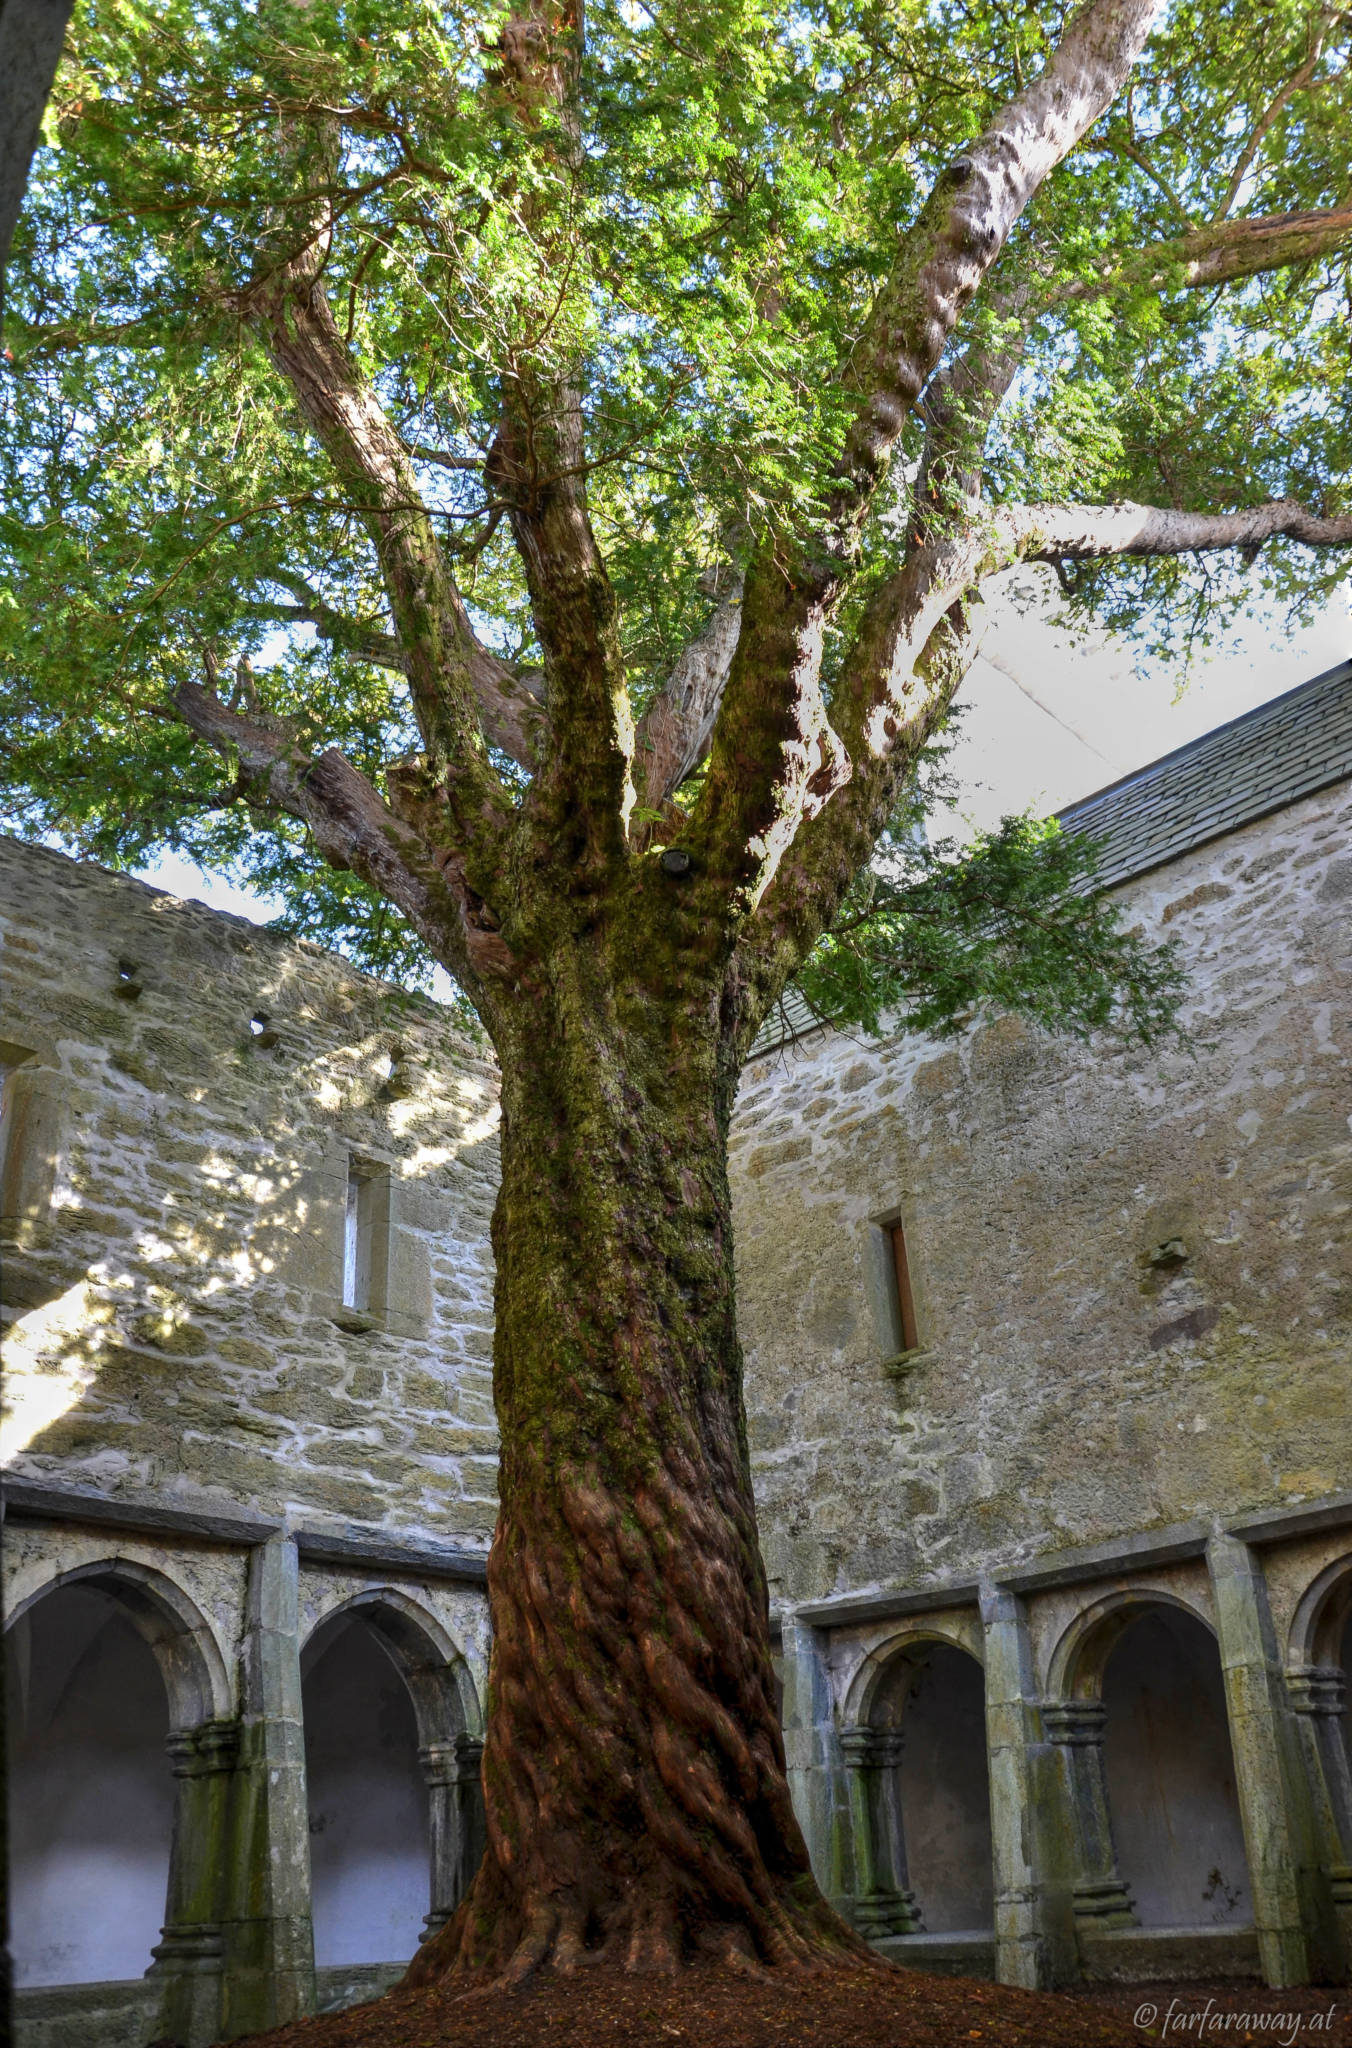 The mighty yew in Muckross Abbey